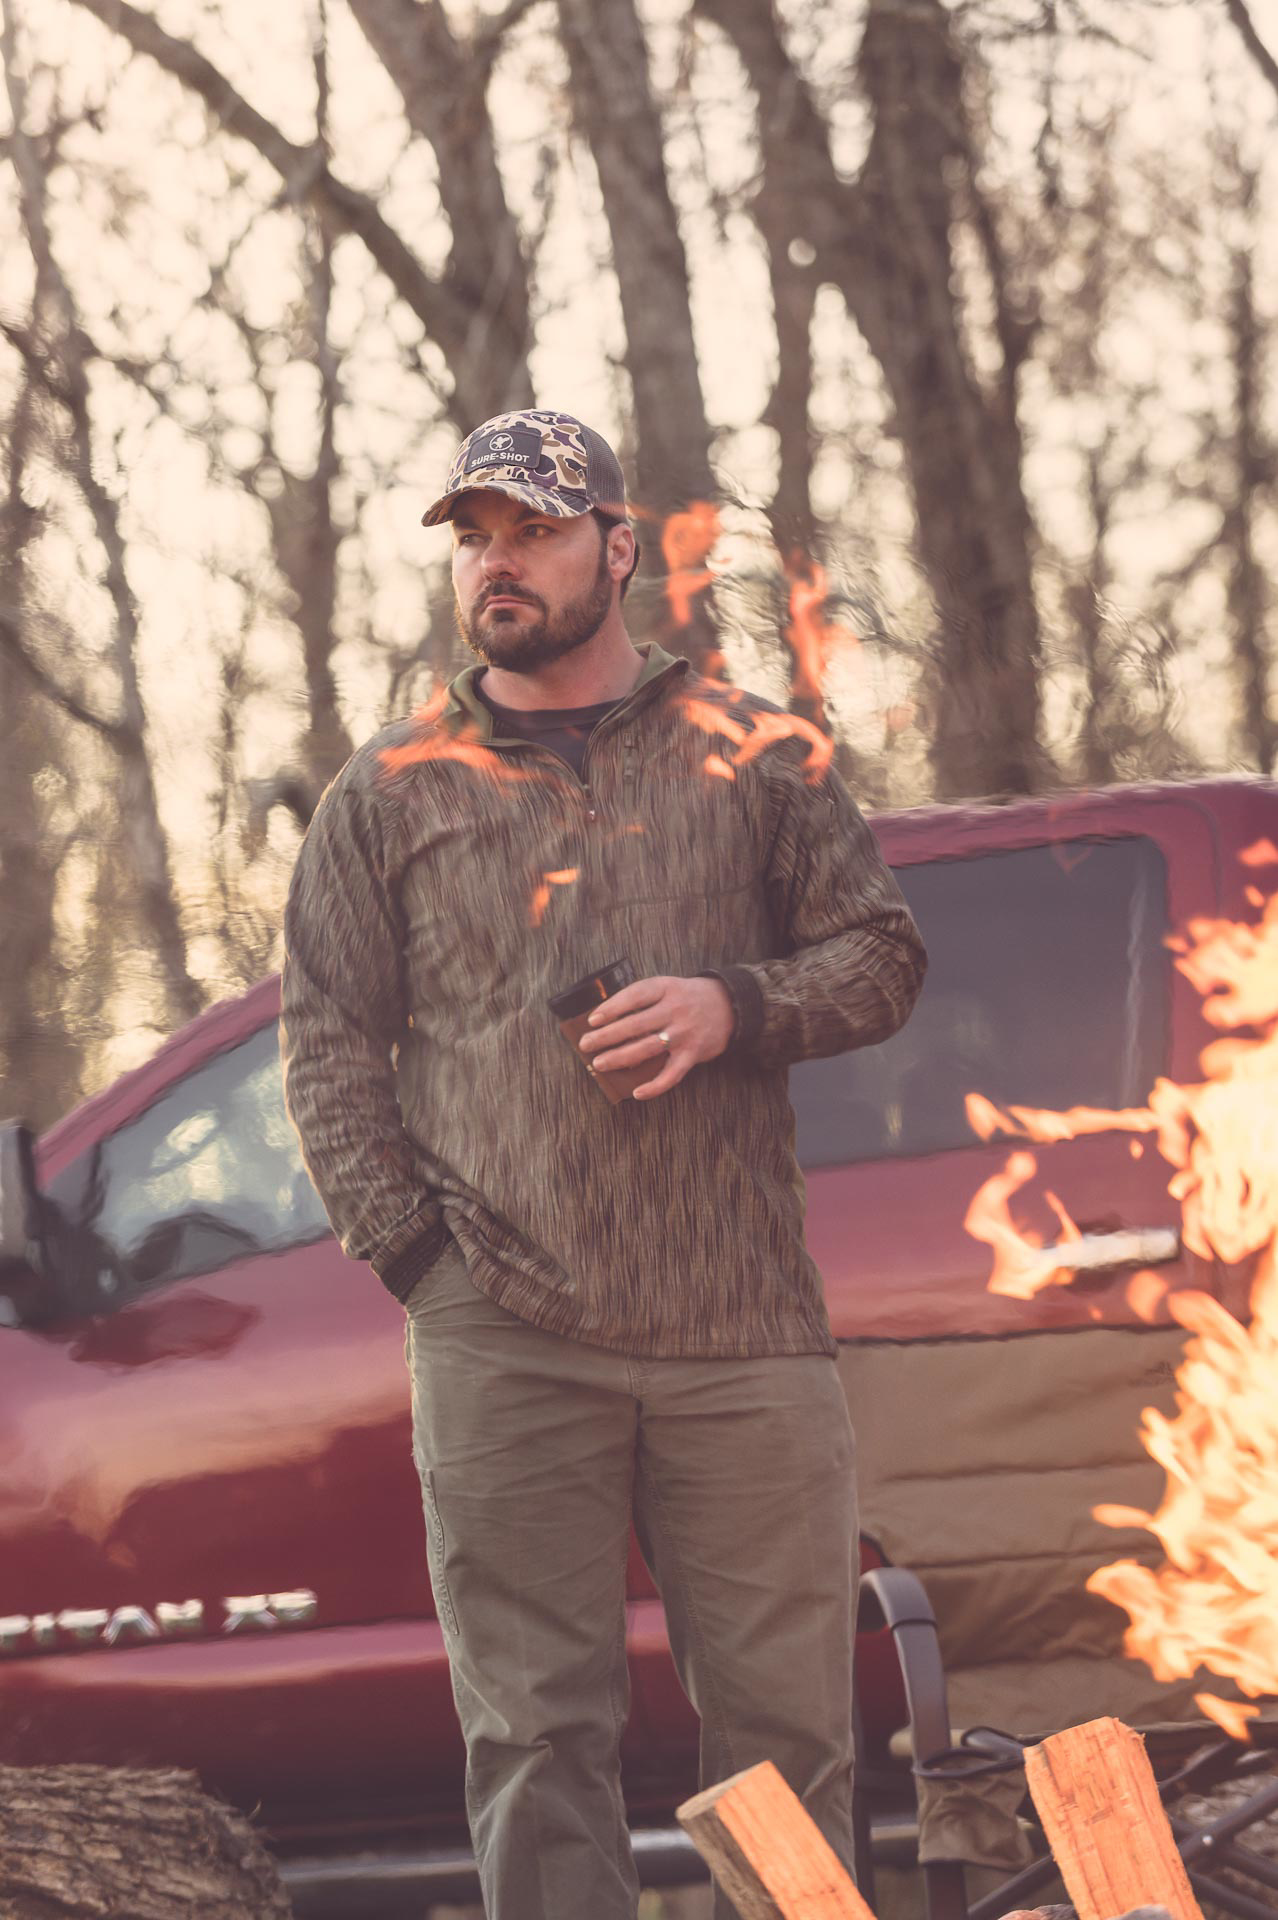 Duck hunter wearing a Voormi wool shirt standing near a fire in front of a Nissan Titan. © Tony Bynum